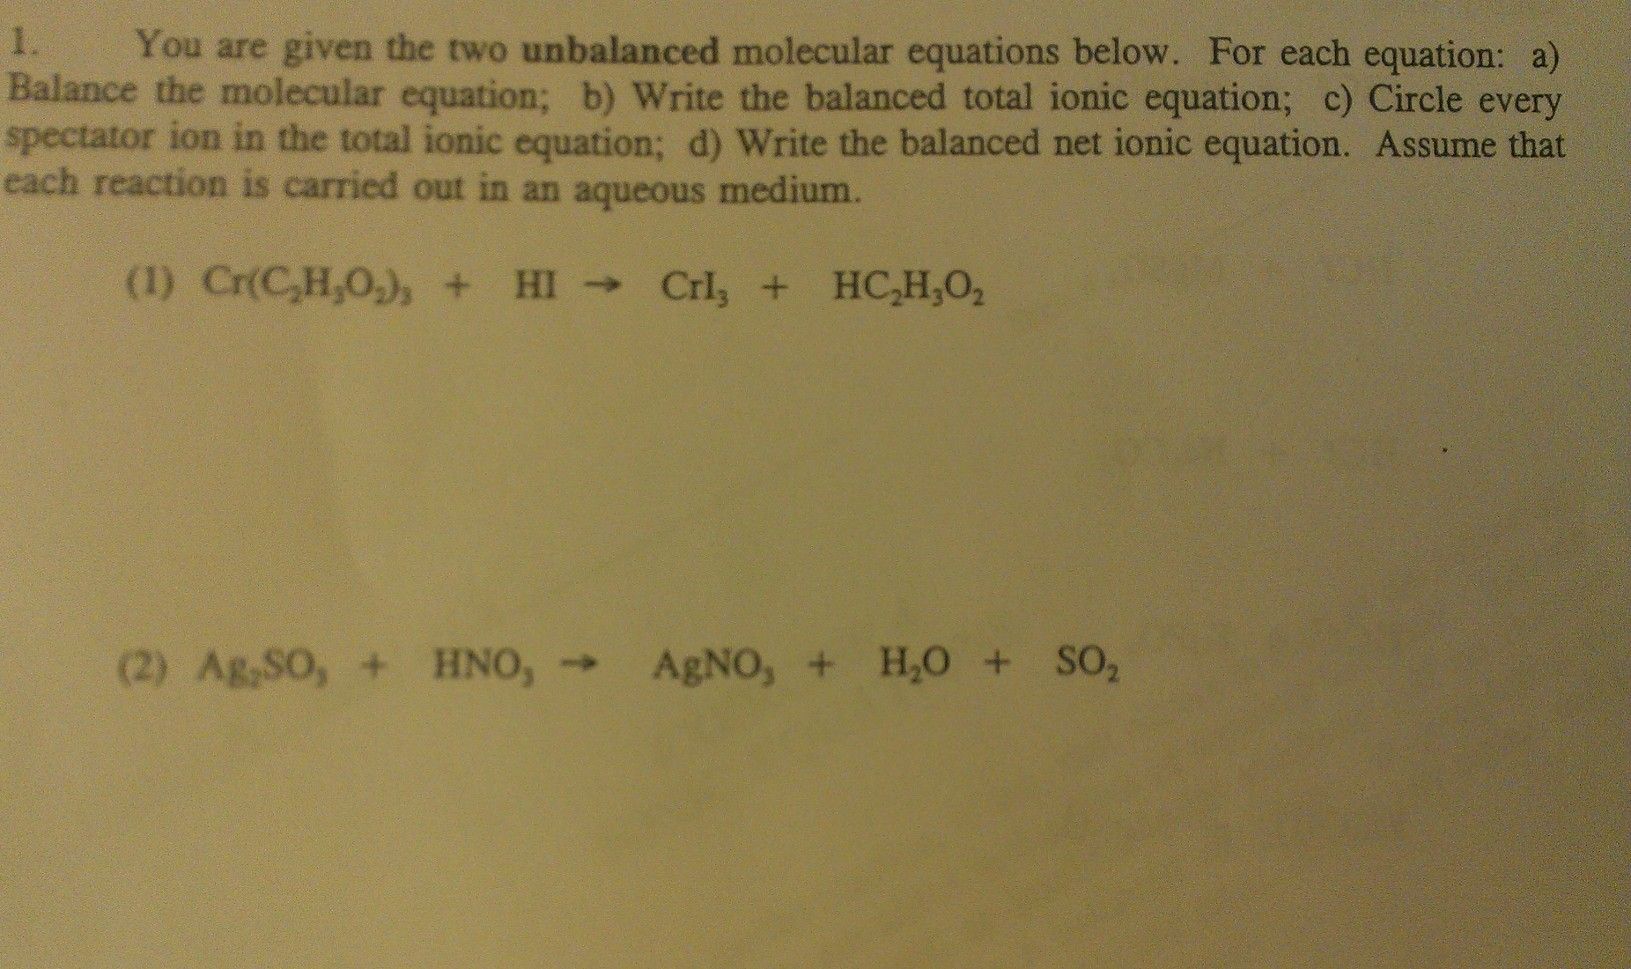 How to write balanced molecular equations for eactions